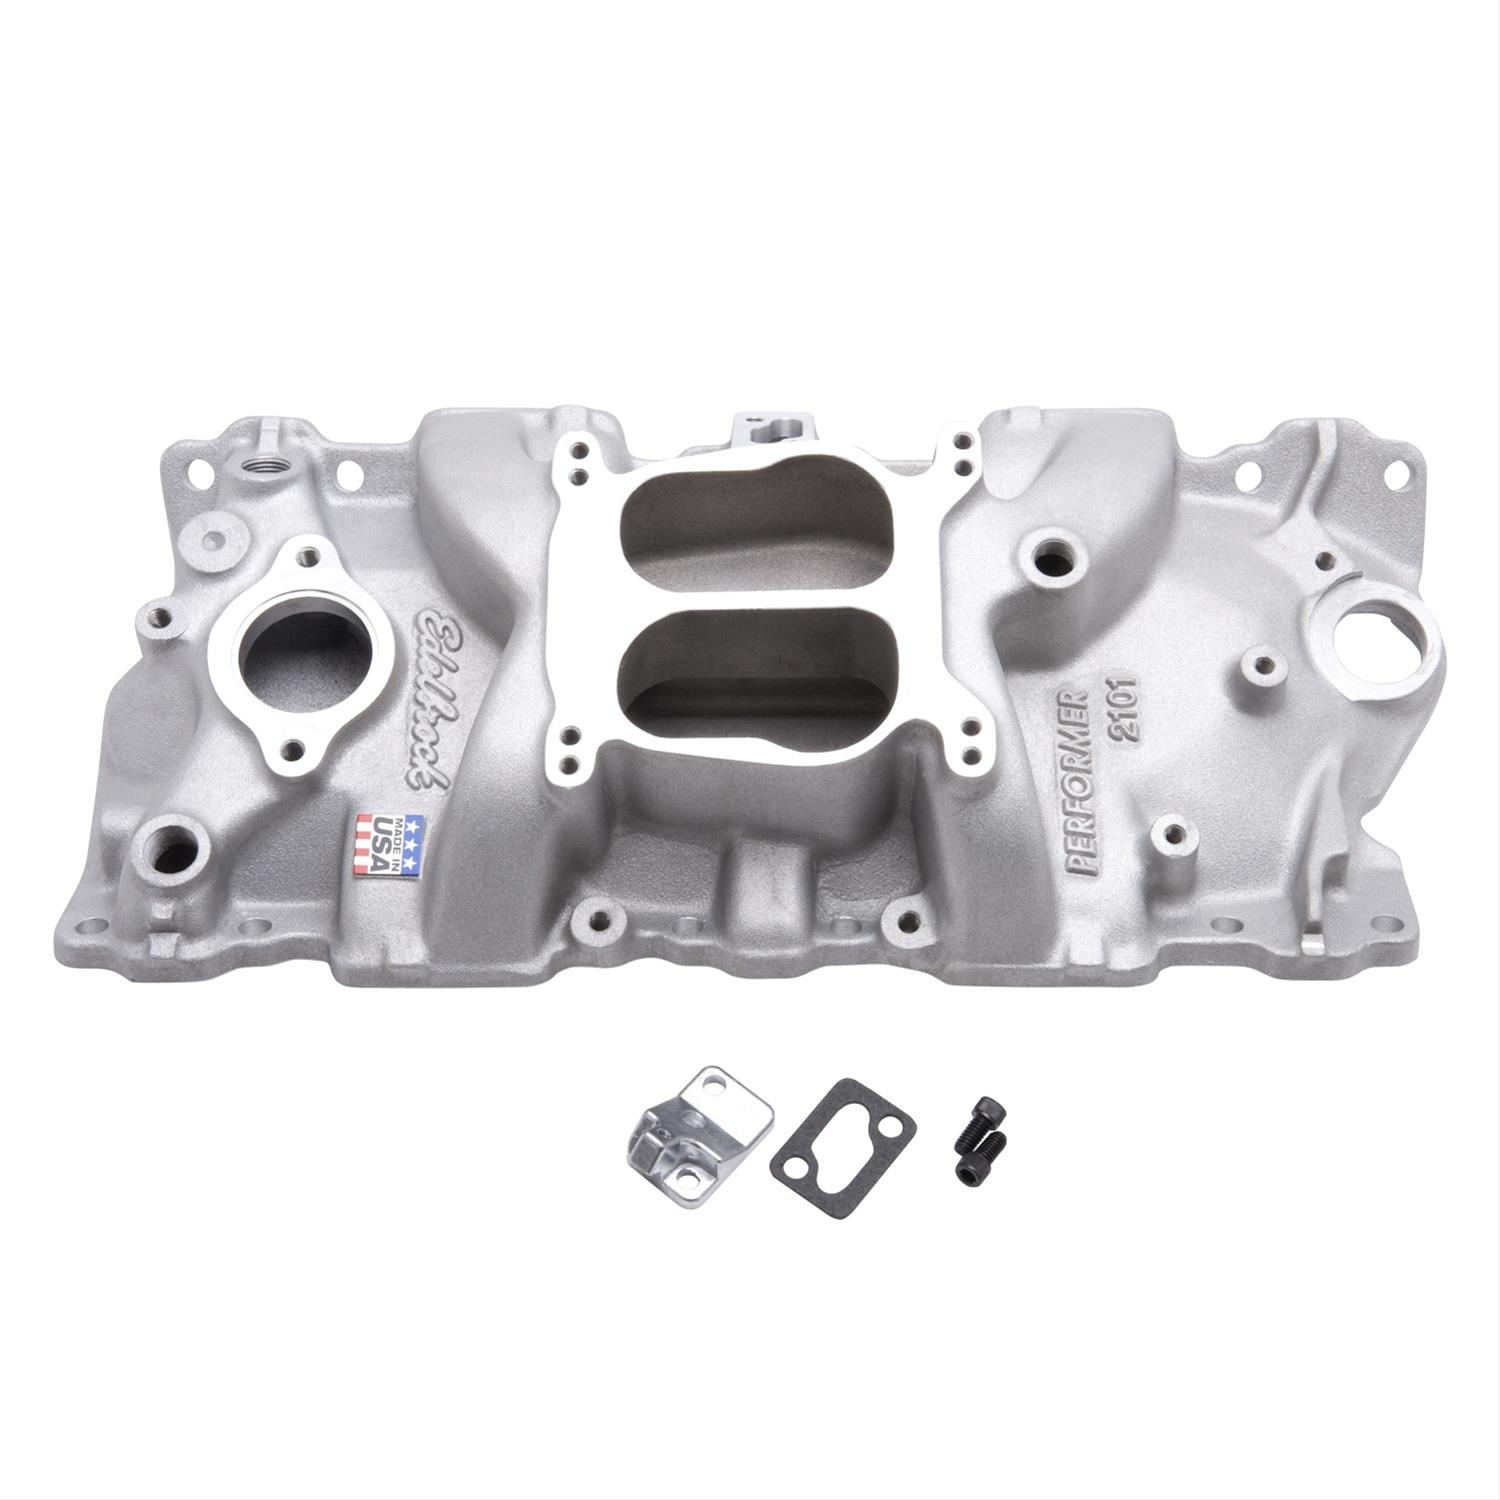 Edelbrock 7101 Small Block Chevy Performer RPM Intake Manifold w//Bolts//Gaskets//RTV